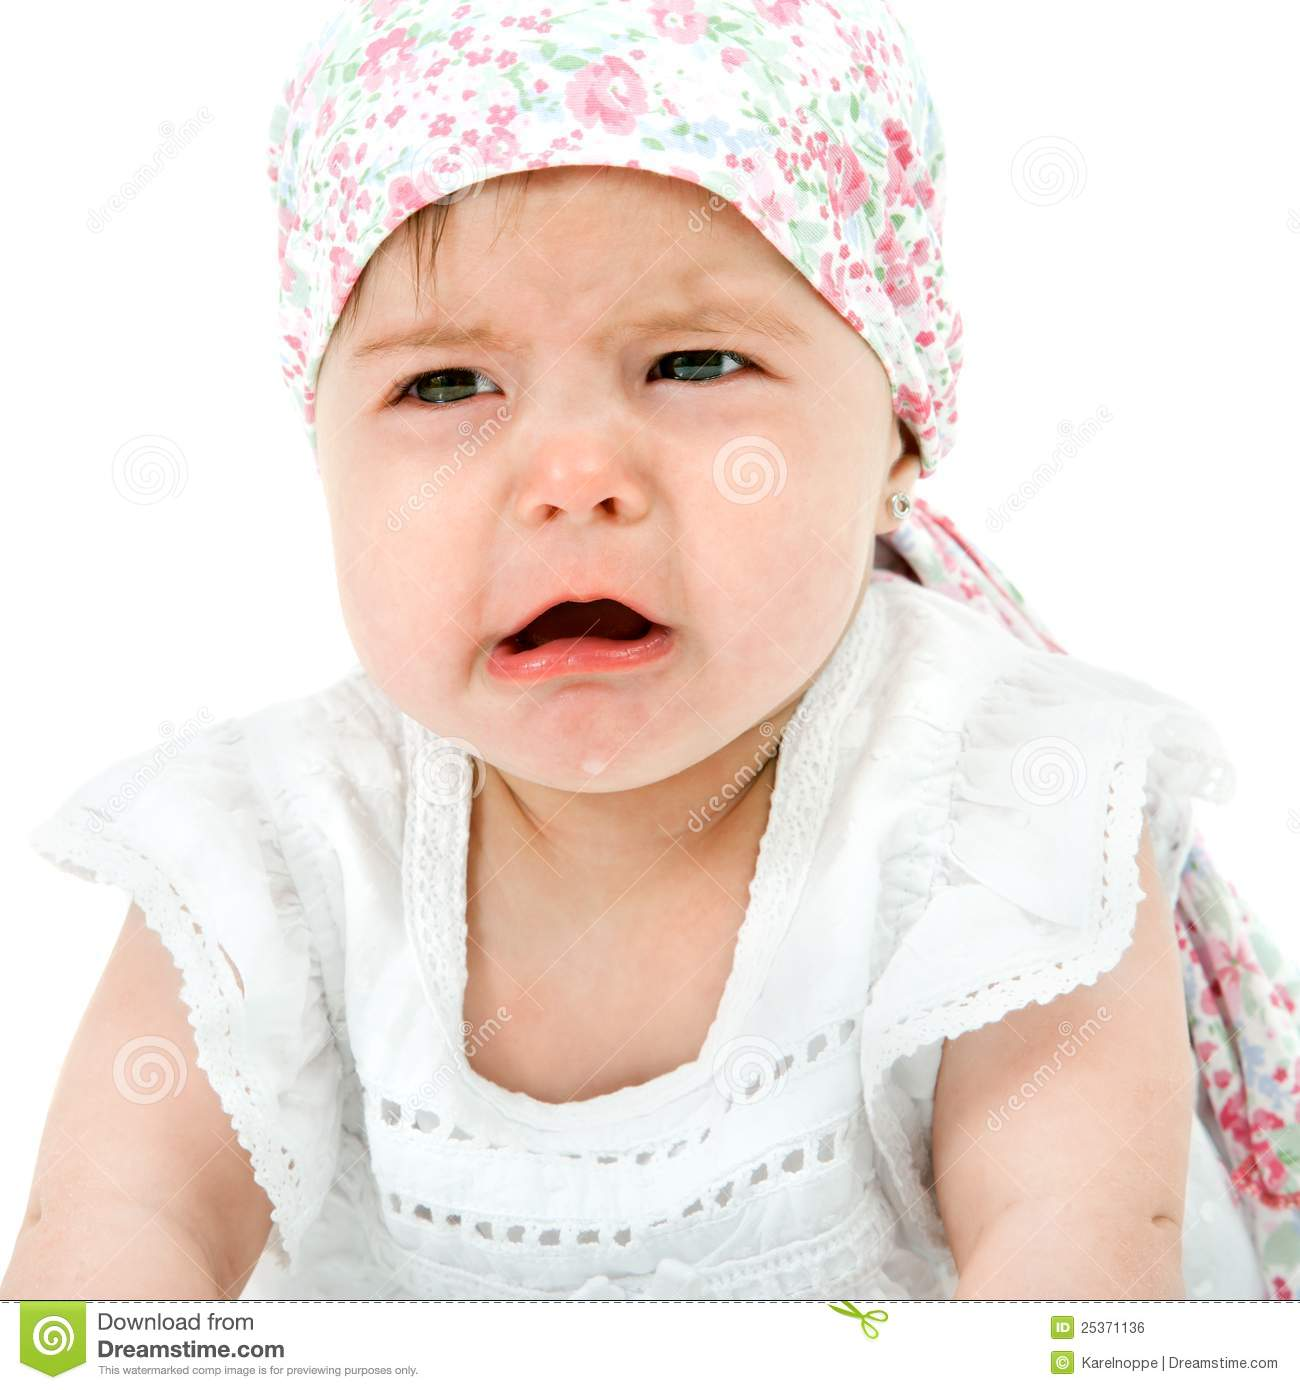 baby girl with sad face expression. stock photo - image of cheerless